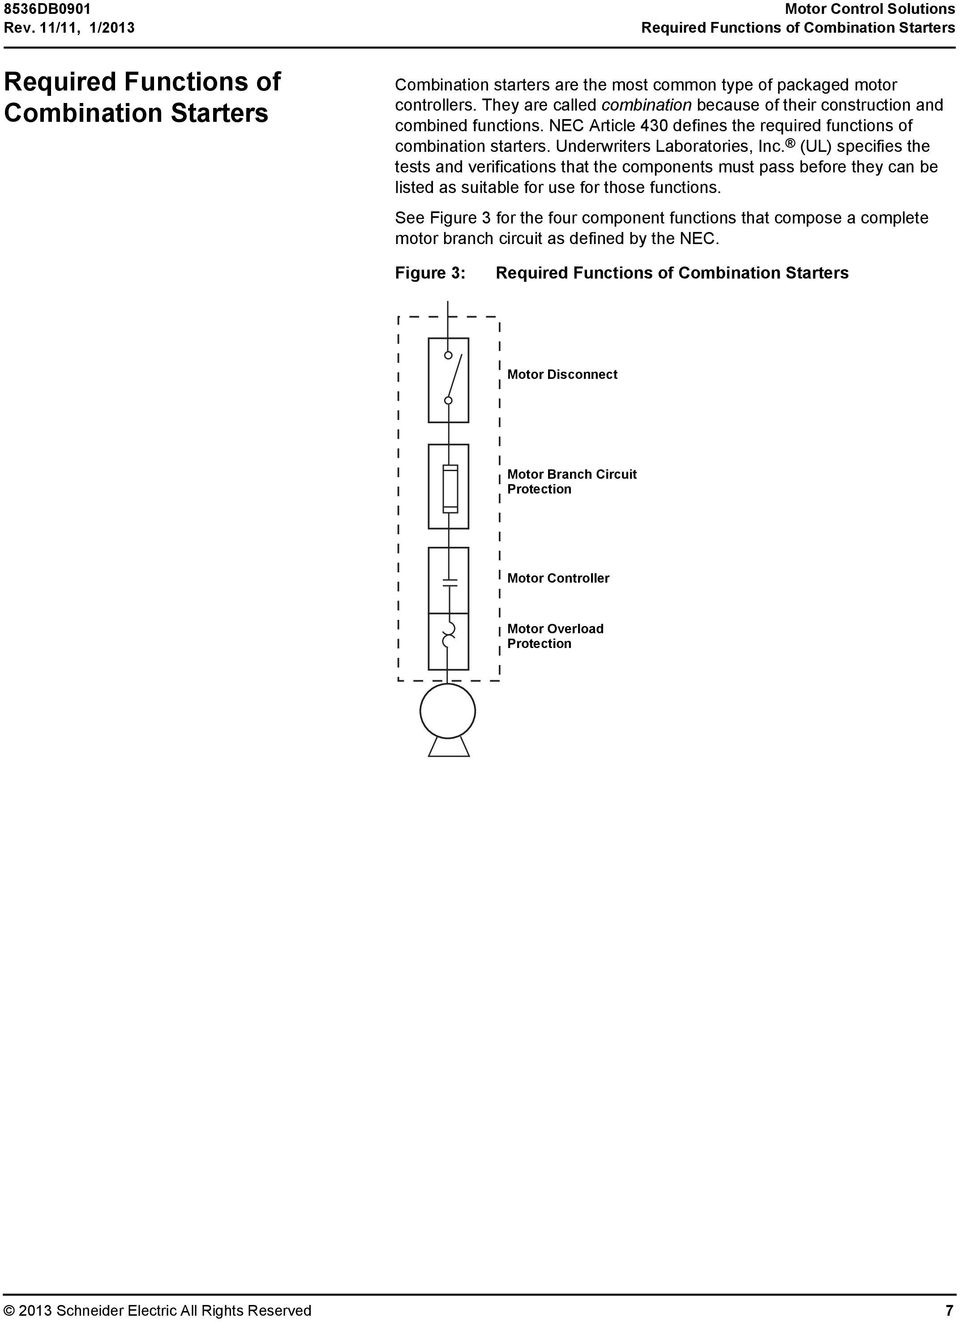 Motor Control Solutions For The North American Market Pdf Overload Relay Wiring Diagrams They Are Called Combination Because Of Their Construction And Combined Functions Nec Article 430 Defines